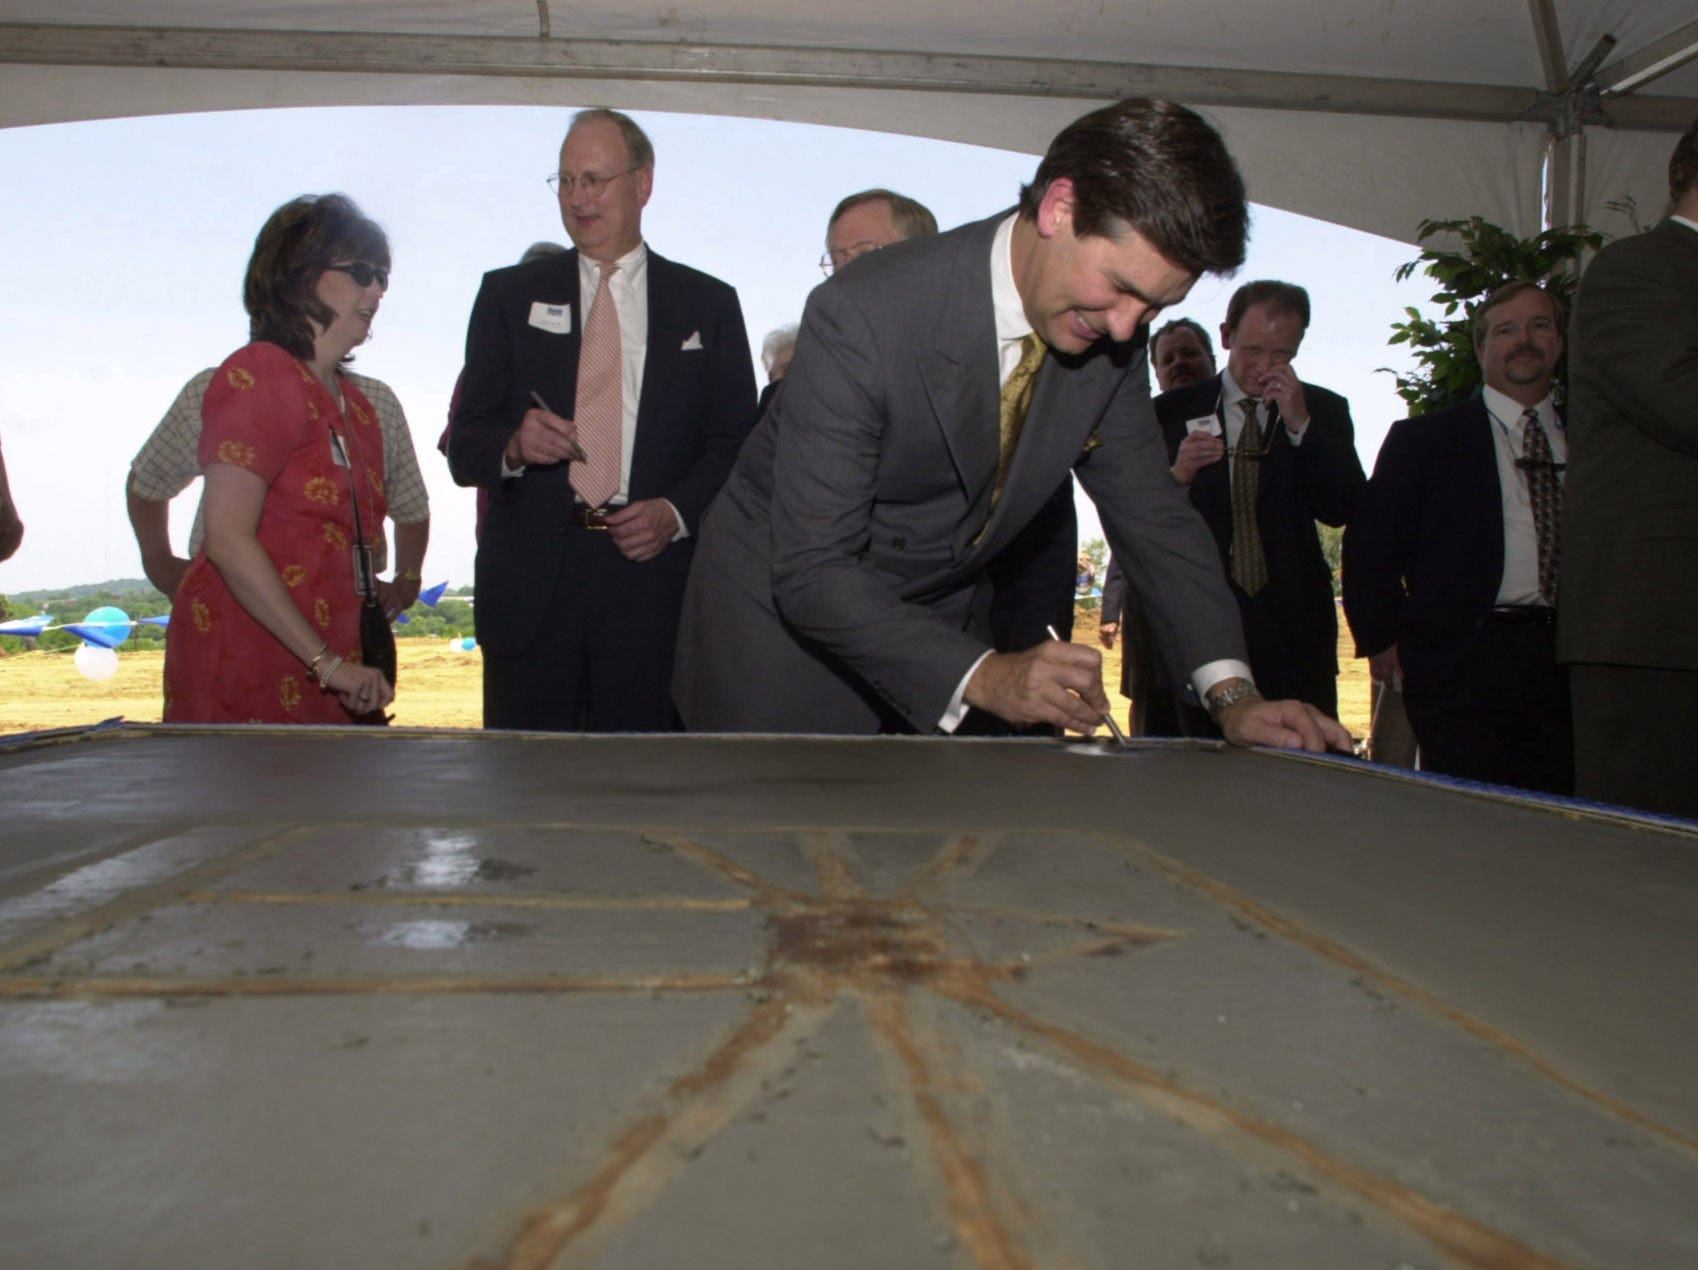 In a May 17, 2001, photograph, E.W. Scripps Co. President and CEO Kenneth Lowe signs a commemorative concrete marker during a groundbreaking ceremony for the $50 million Knoxville News-Sentinel building. At left Angie Epps, News-Sentinel circulation sales and marketing manager, talks to Alan M. Horton, Scripps senior vice president for newspapers.